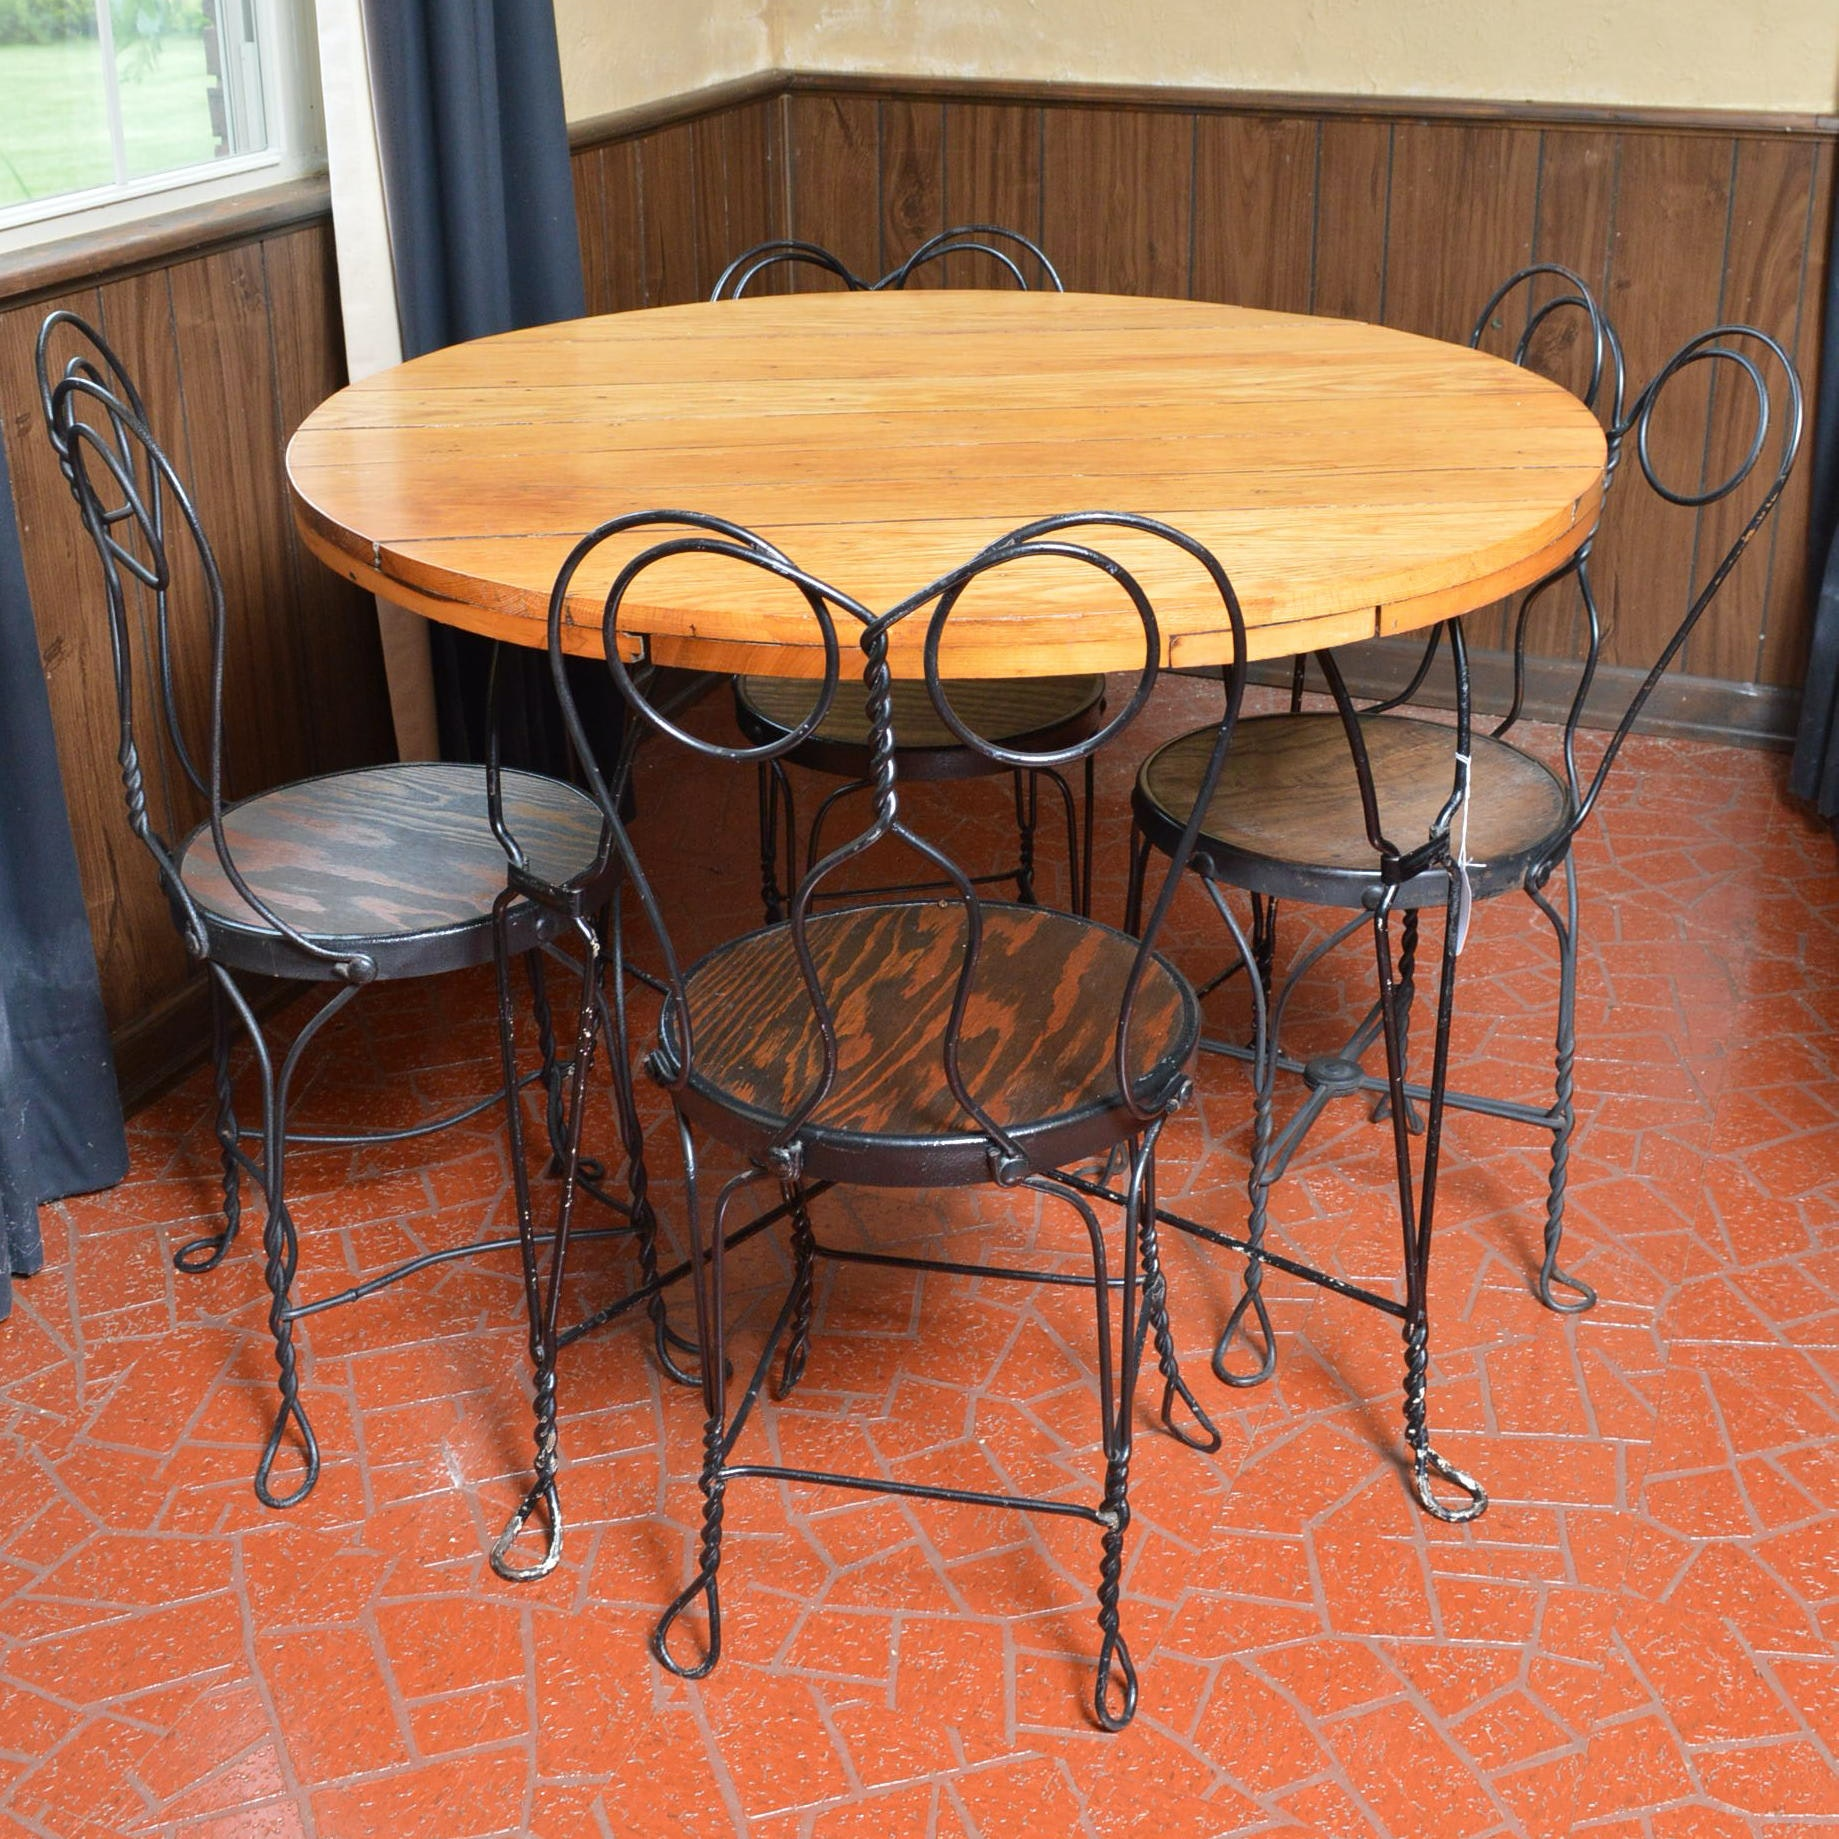 Ice Cream Parlor Dining Table and Chairs